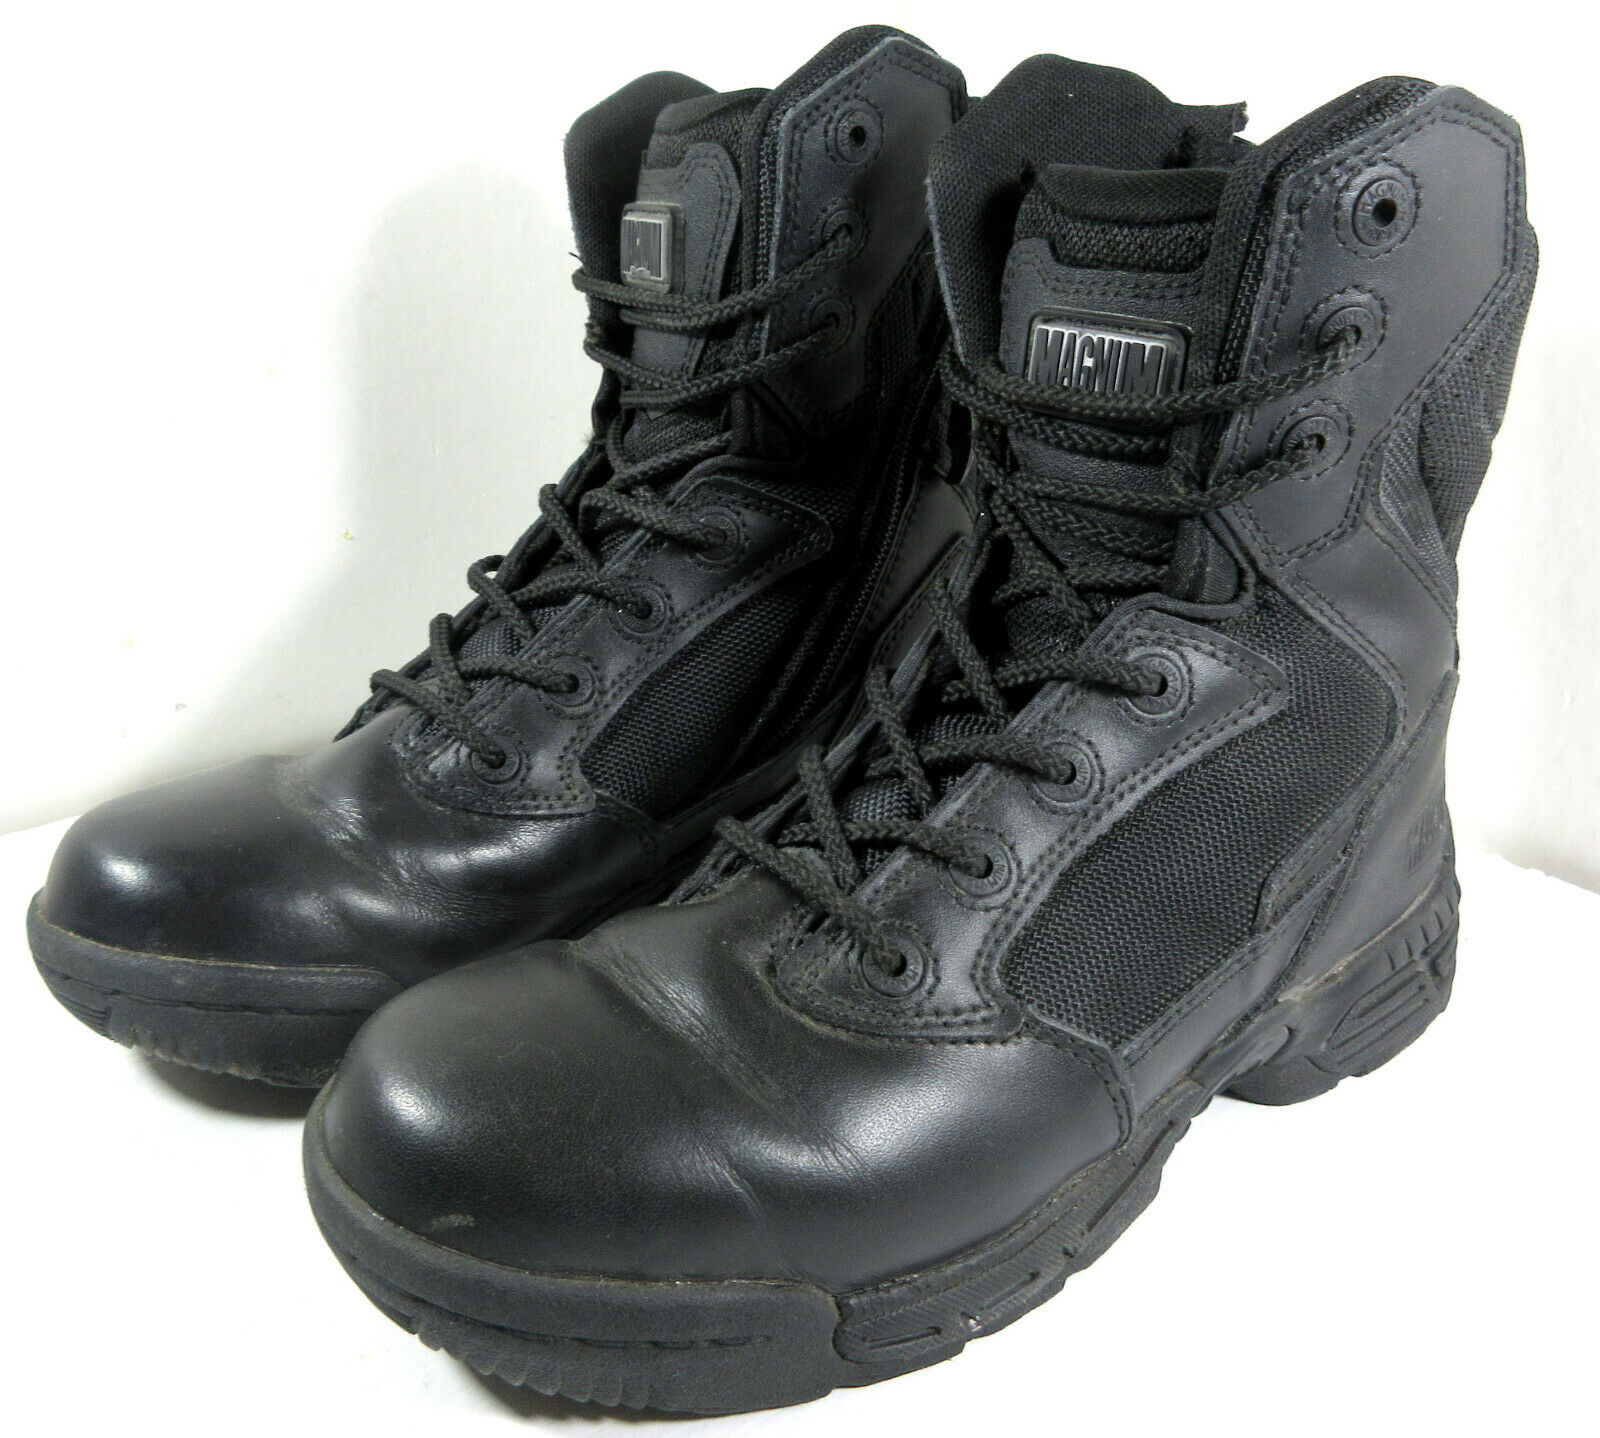 Magnum Stealth 8.0 Force Black Military Combat Police Boots Size Zip Size 5.5